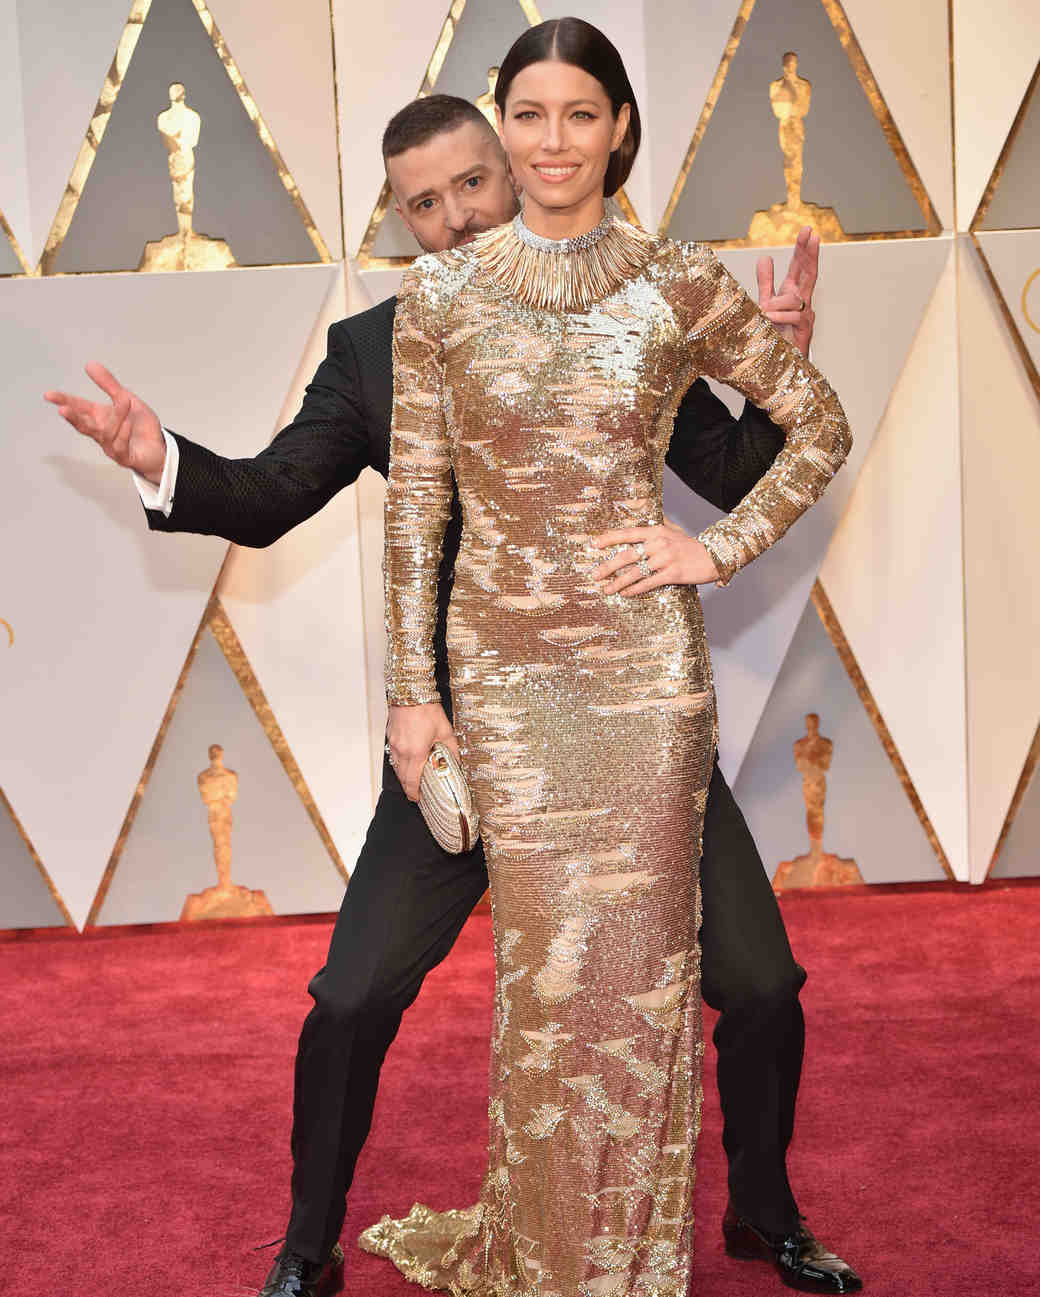 Justin Timberlake and Jessica Biel at 2017 Academy Awards